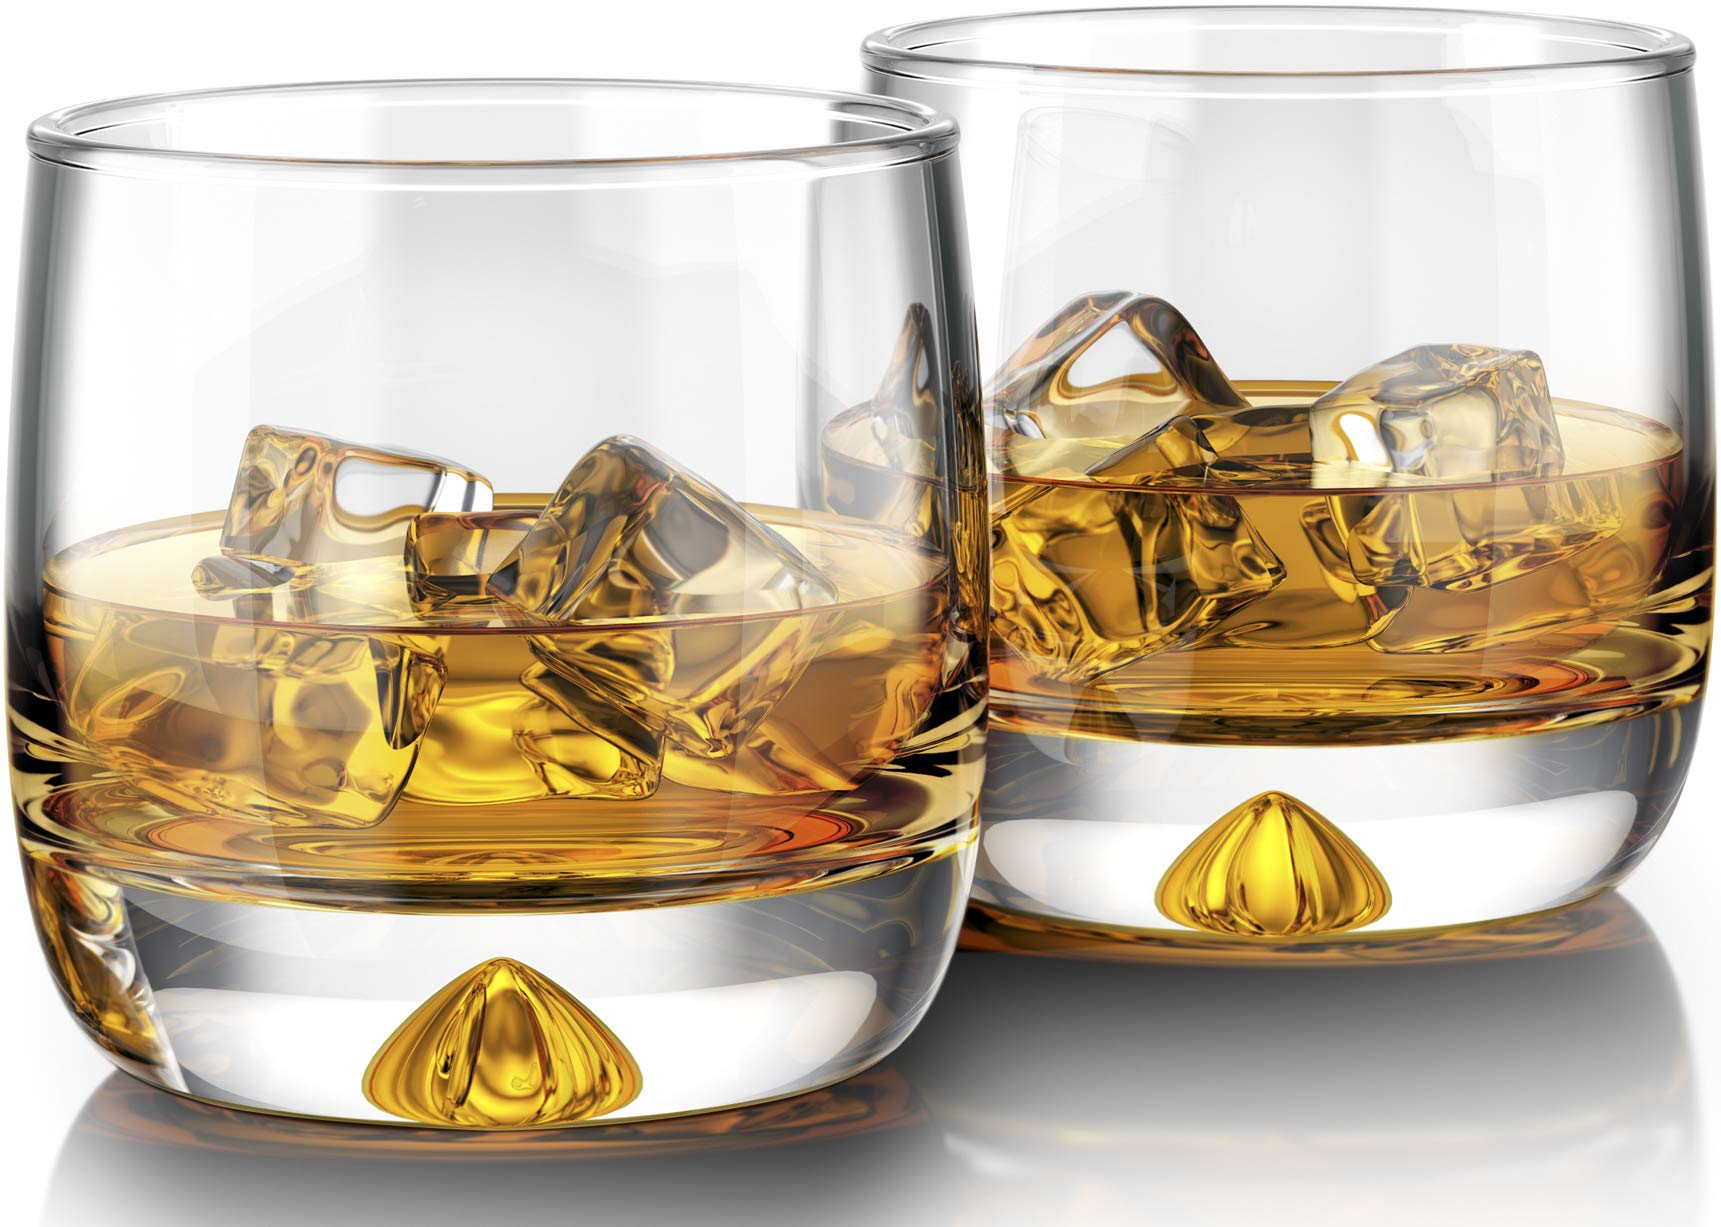 Premium Whiskey Glasses - Large - 12oz Set of 2 - Lead Free Hand Blown Crystal - Thick Weighted Bottom - Seamless Handmade Design - Perfect for Scotch, Bourbon, Manhattans, Old Fashioned's, Cocktails.